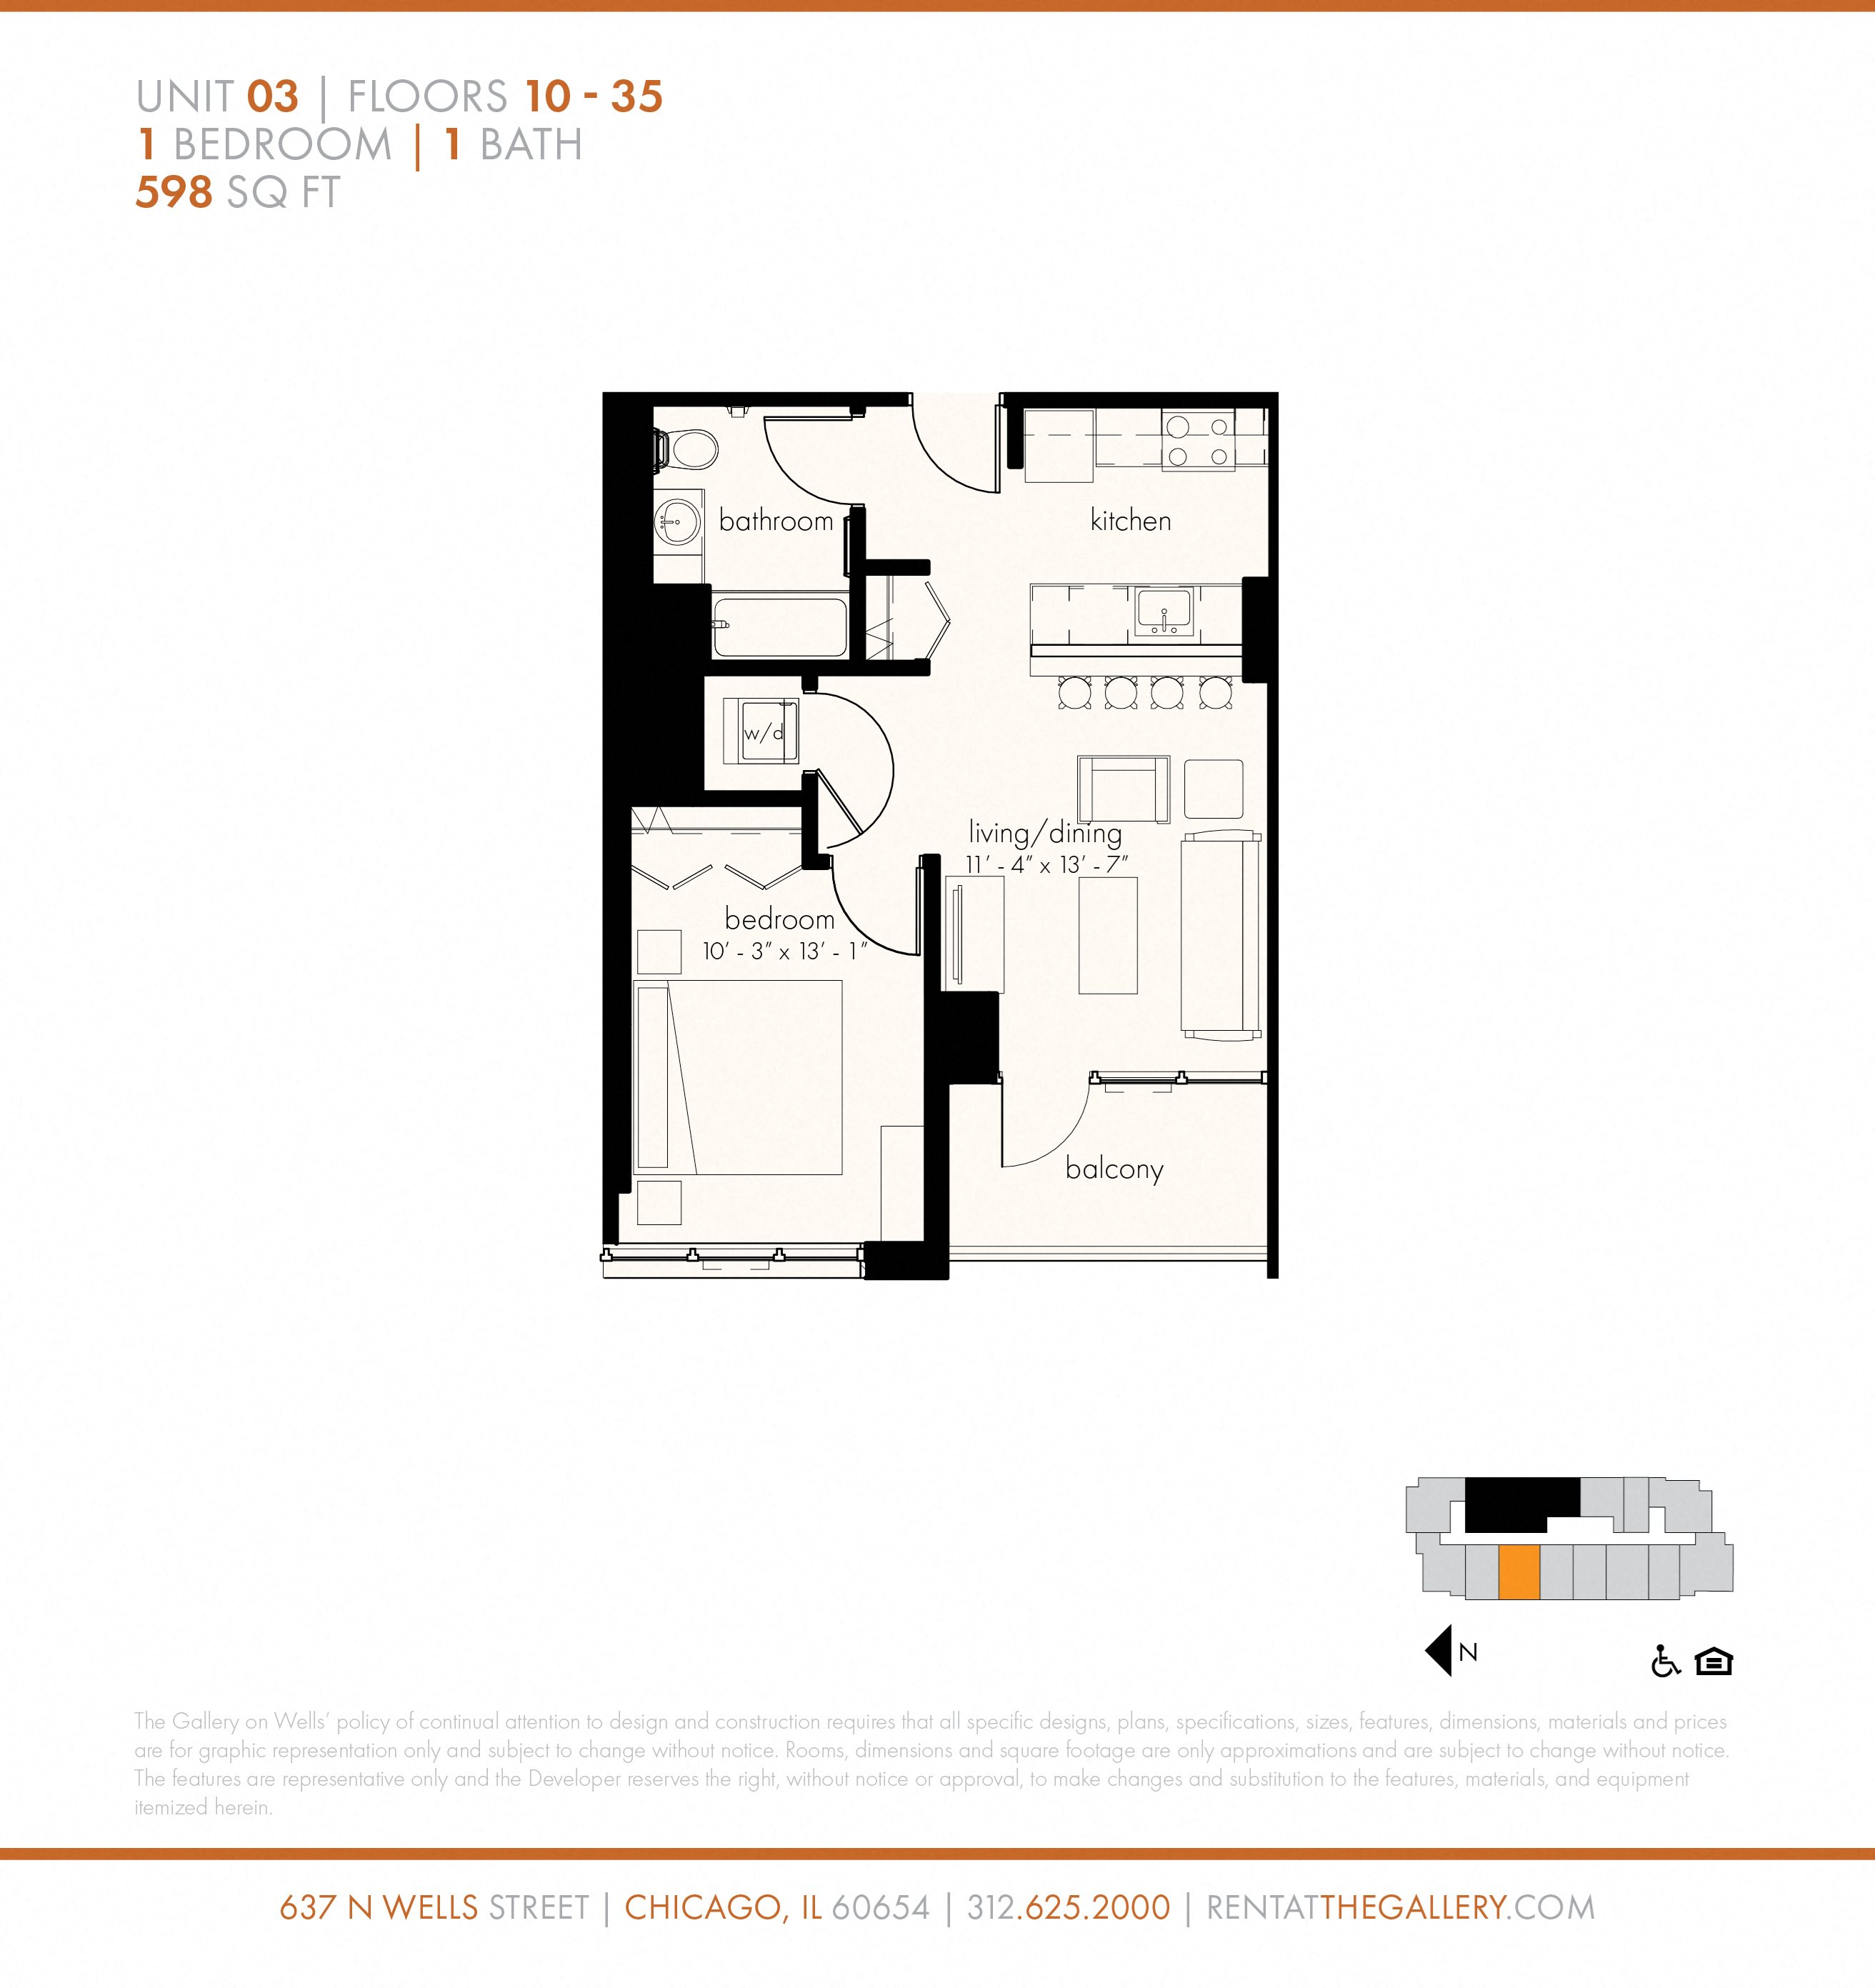 One Bedroom (598 sf) Floor Plan 5